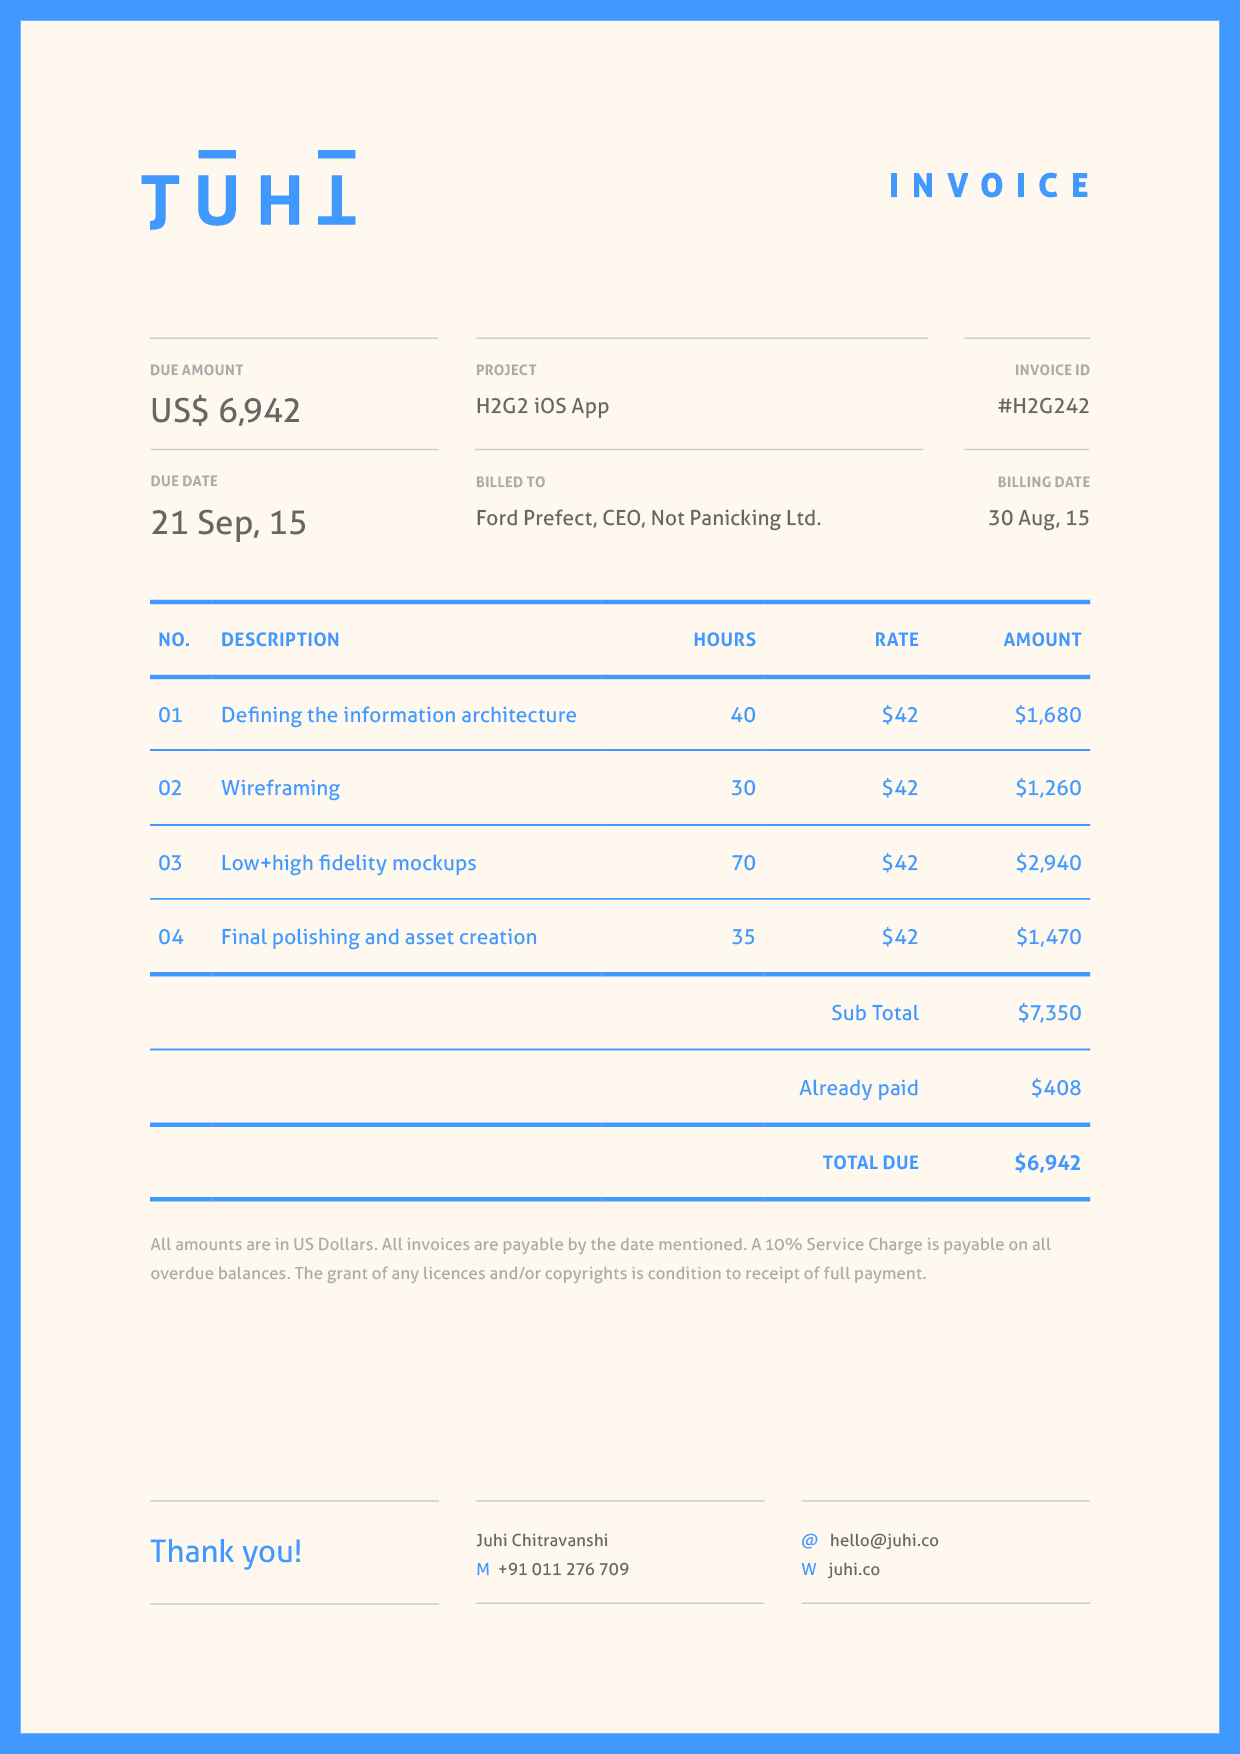 Conservativereviewus  Surprising Dont Hold Back On Your Invoice  Inspiring Designs  With Magnificent Invoice By Juhi Chitravanshi Follow With Breathtaking Company Receipt Format Also Maximum Tax Deductions Without Receipts In Addition Hra Receipt And Neat Receipts And Quickbooks As Well As Example Of Payment Receipt Additionally Macaroni And Cheese Receipt From Inspirationfeedcom With Conservativereviewus  Magnificent Dont Hold Back On Your Invoice  Inspiring Designs  With Breathtaking Invoice By Juhi Chitravanshi Follow And Surprising Company Receipt Format Also Maximum Tax Deductions Without Receipts In Addition Hra Receipt From Inspirationfeedcom